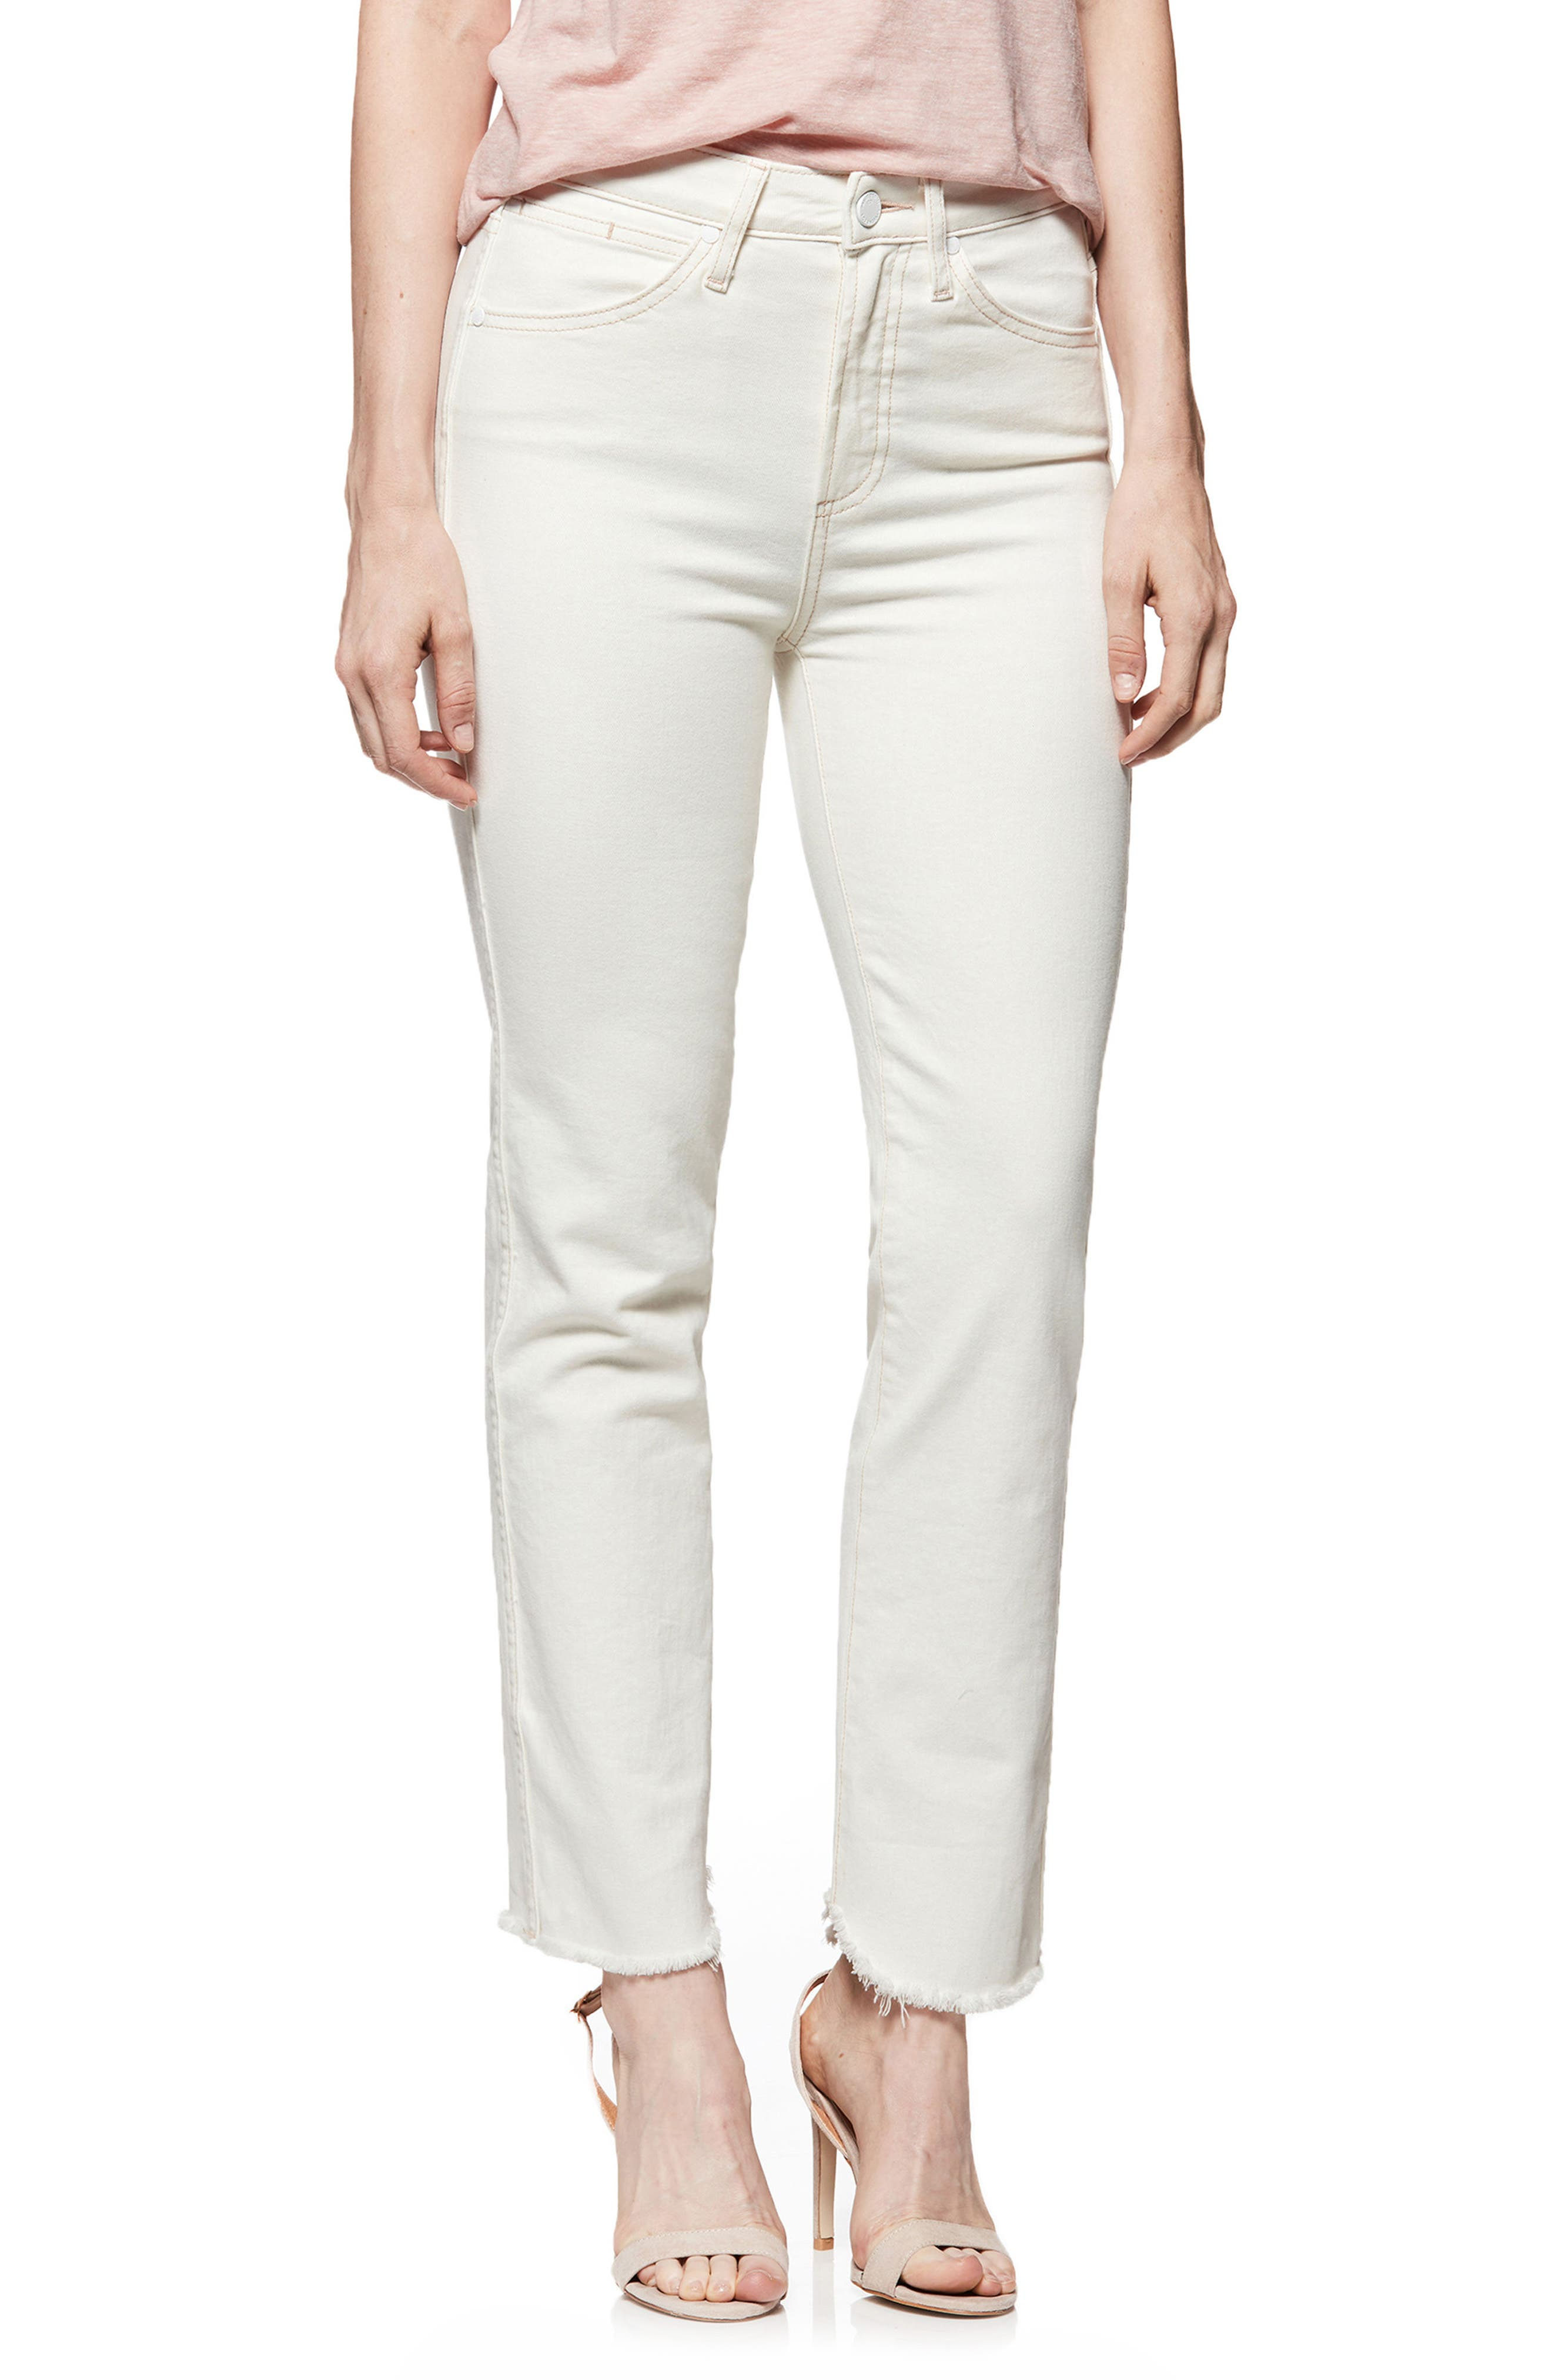 Hoxton High Waist Ankle Straight Jeans,                             Main thumbnail 1, color,                             Cream/ Pink